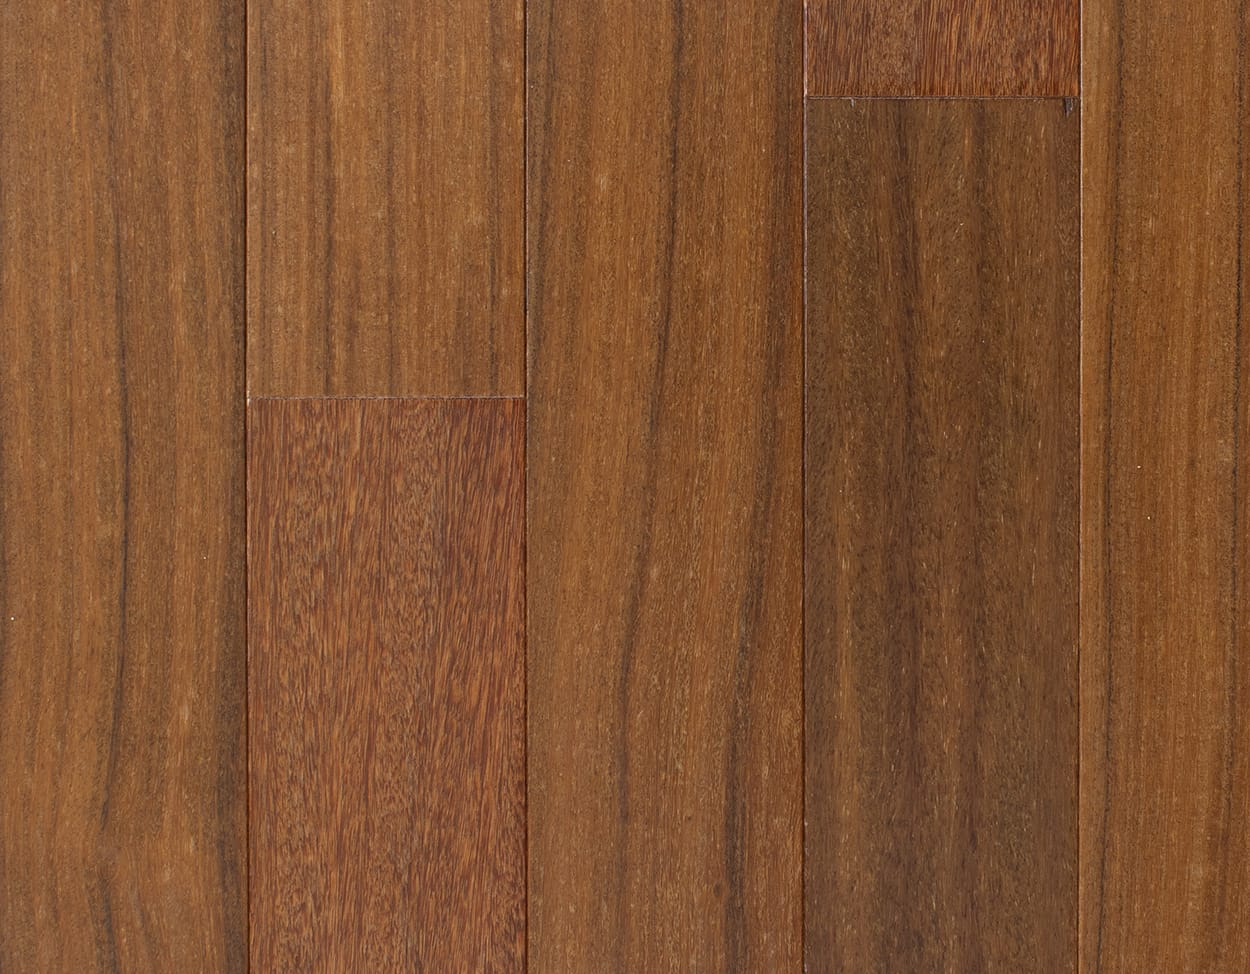 Mullican Meadow Brooke 3 Cumaru Natural Hardwood Flooring